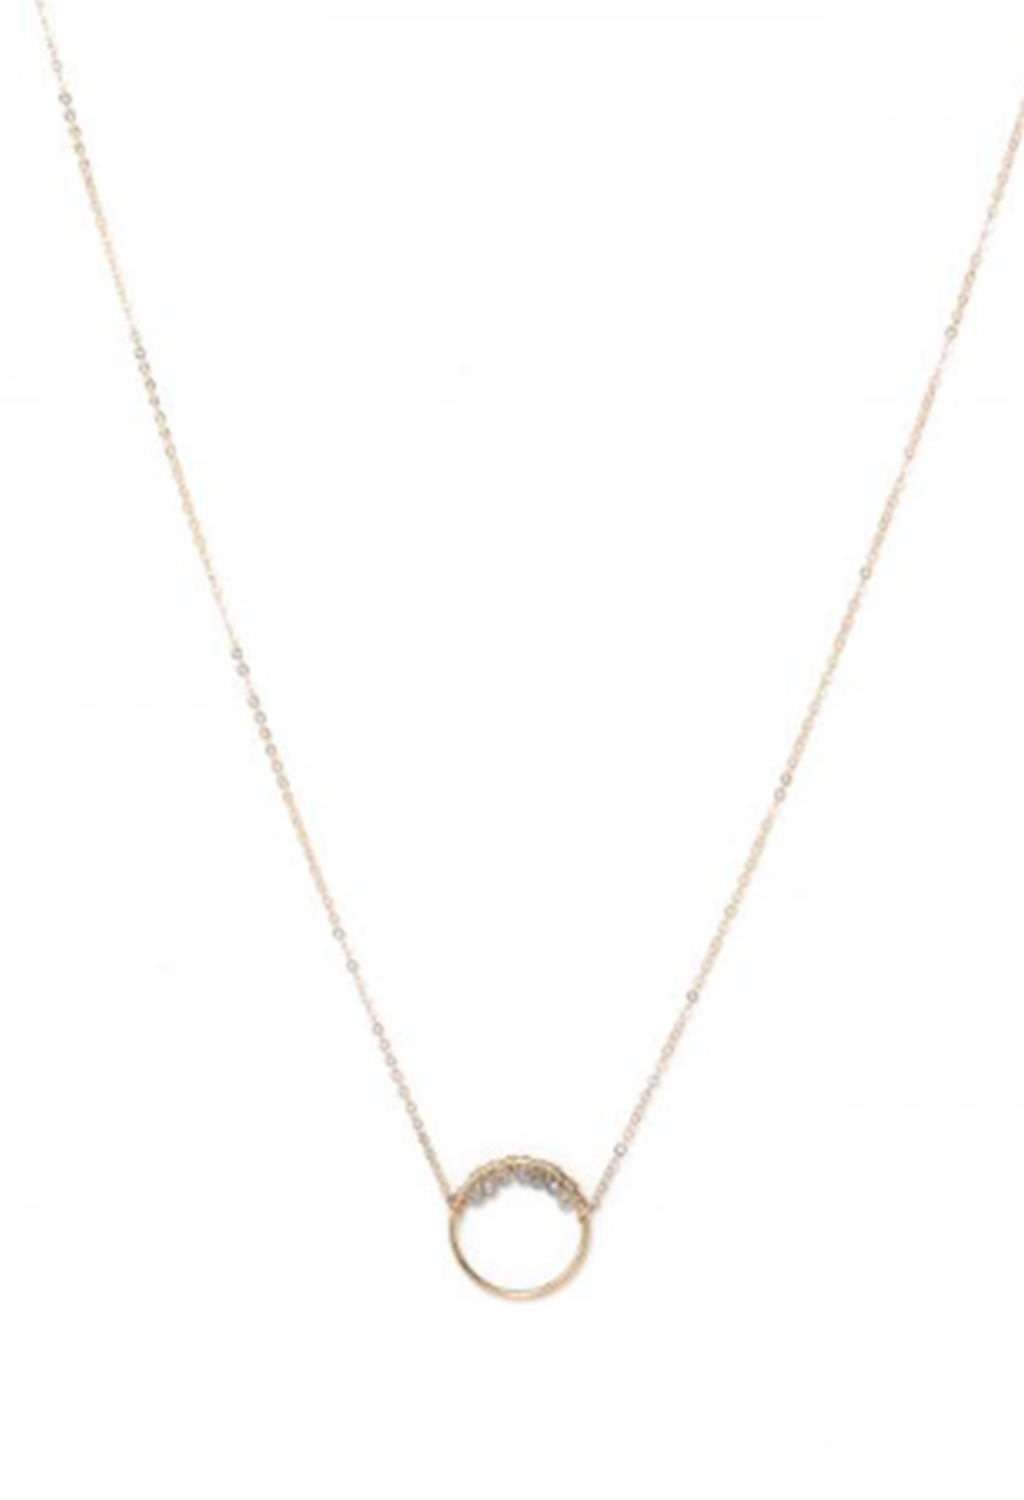 Celine Labra Necklace